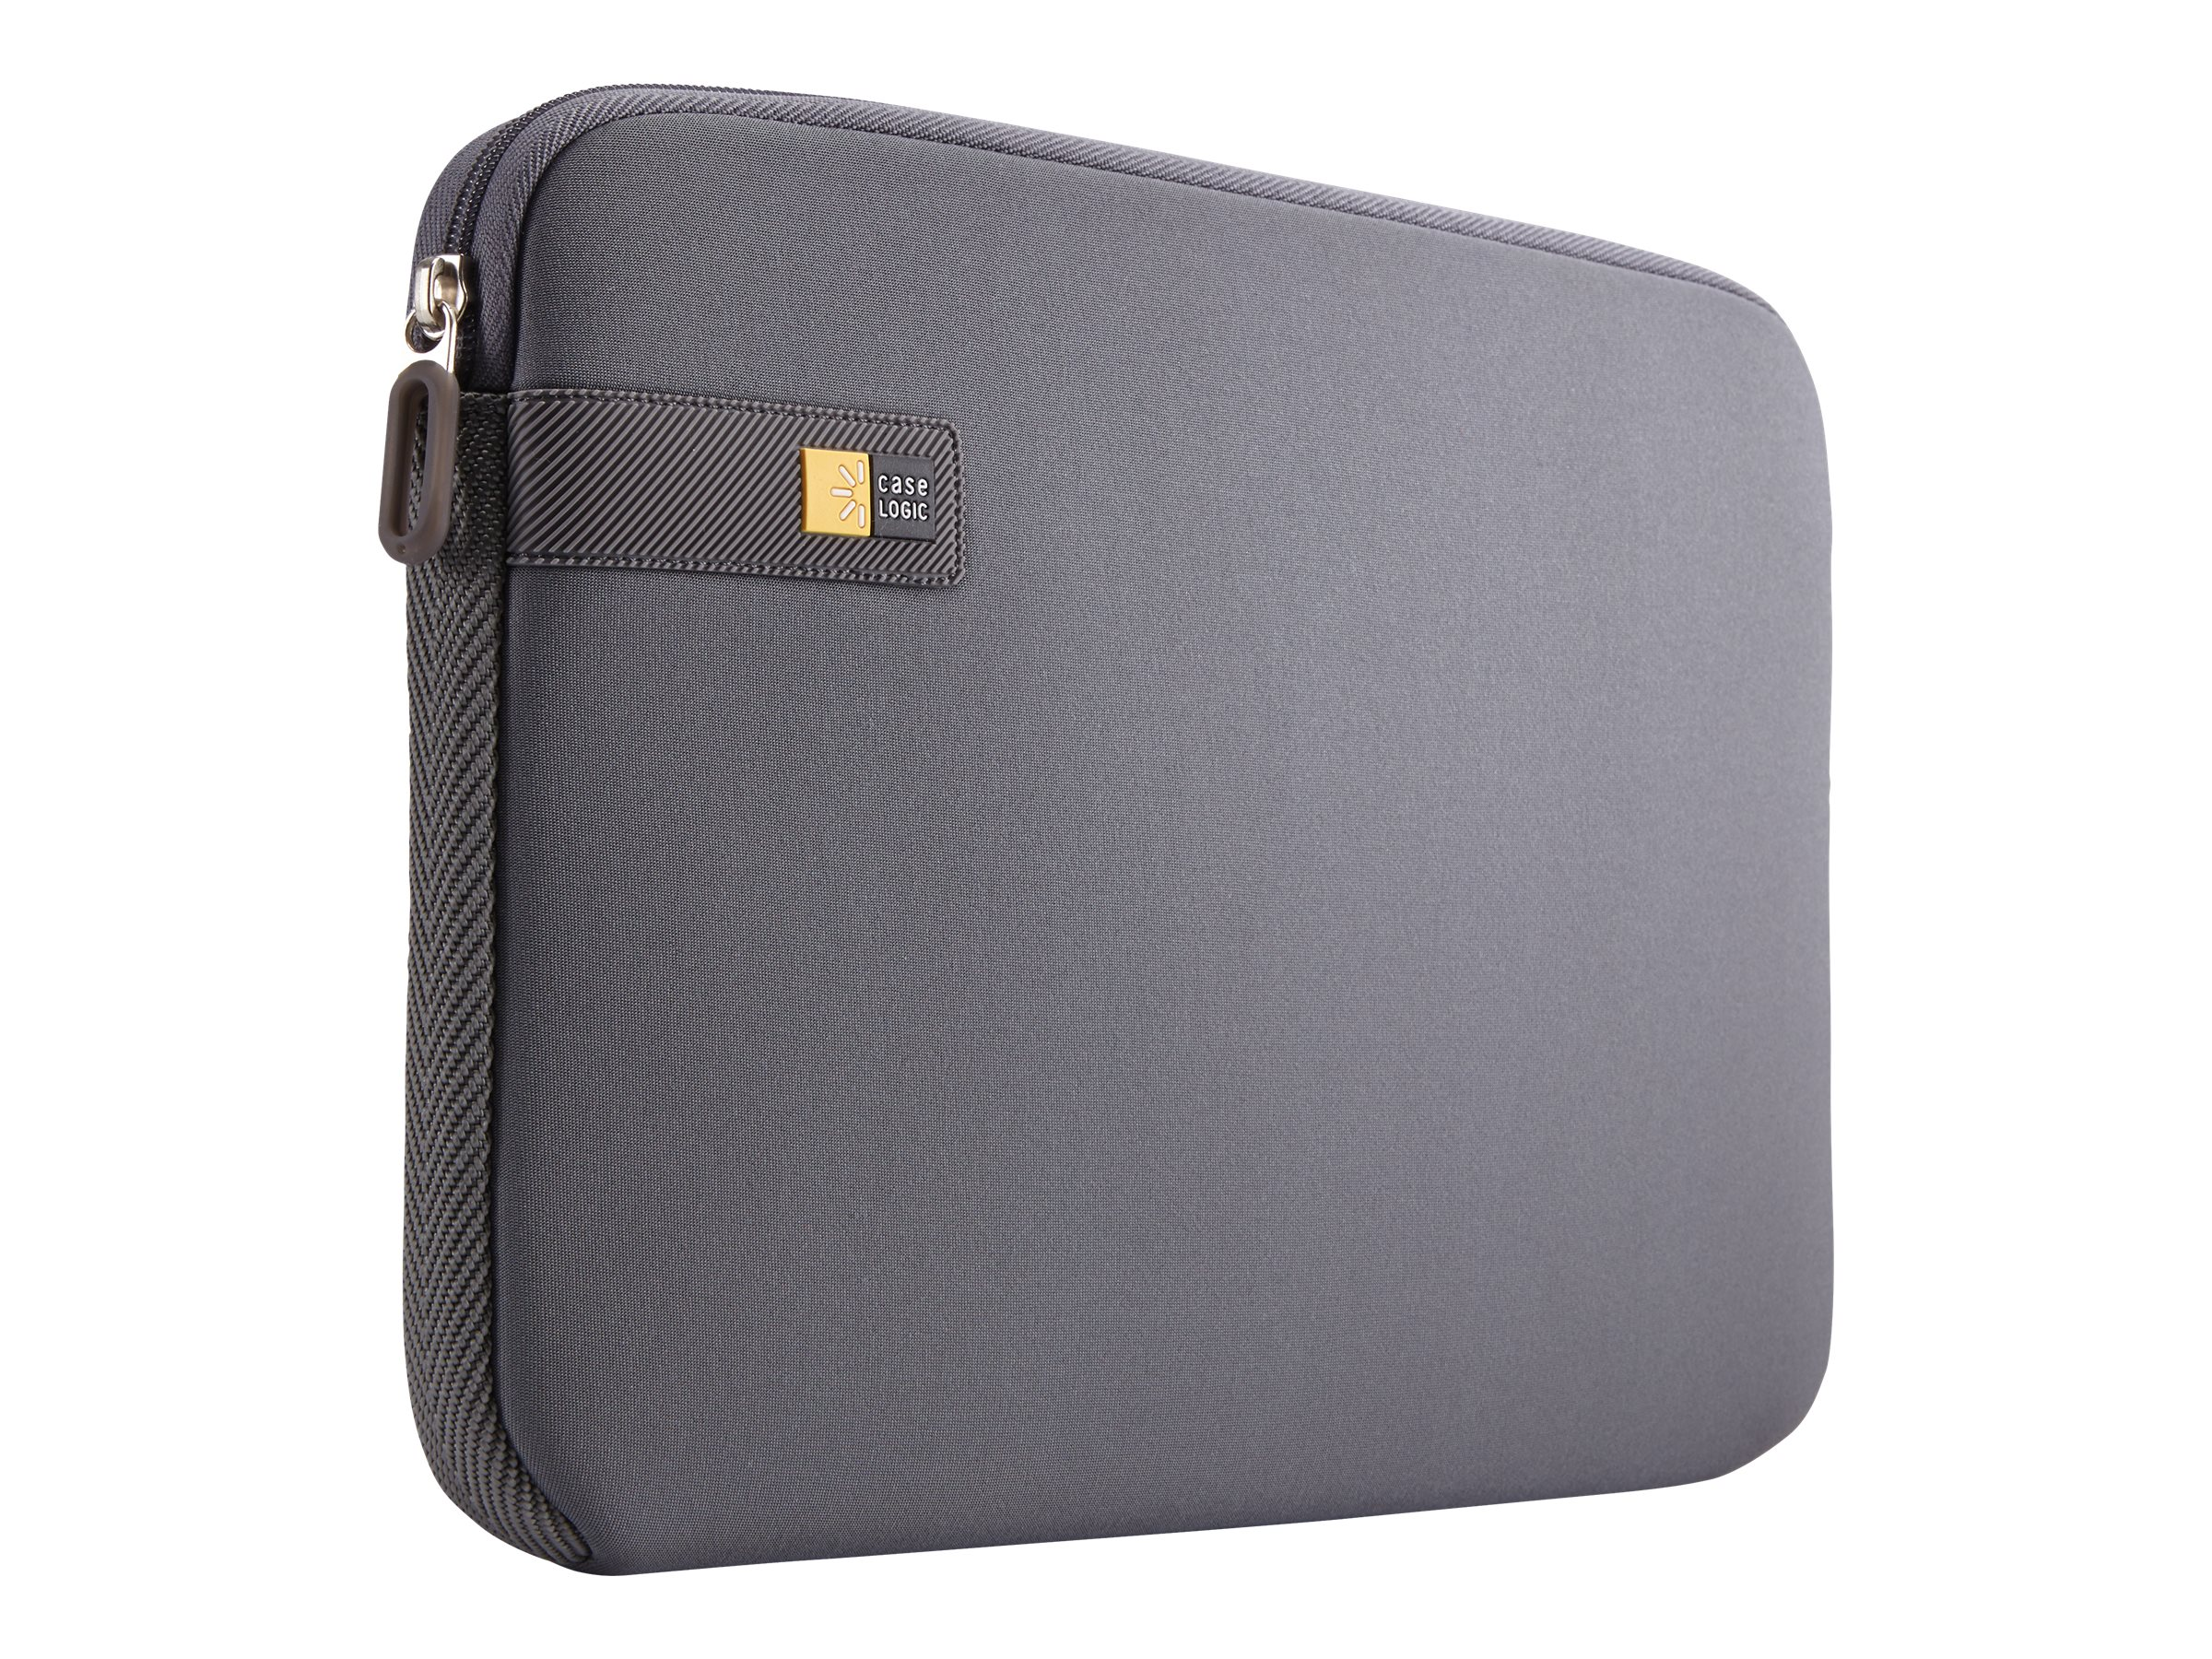 Case Logic Chromebooks Ultrabooks Sleeve 10-11.6, Graphite, LAPS-111GRAPHITE, 17365330, Protective & Dust Covers